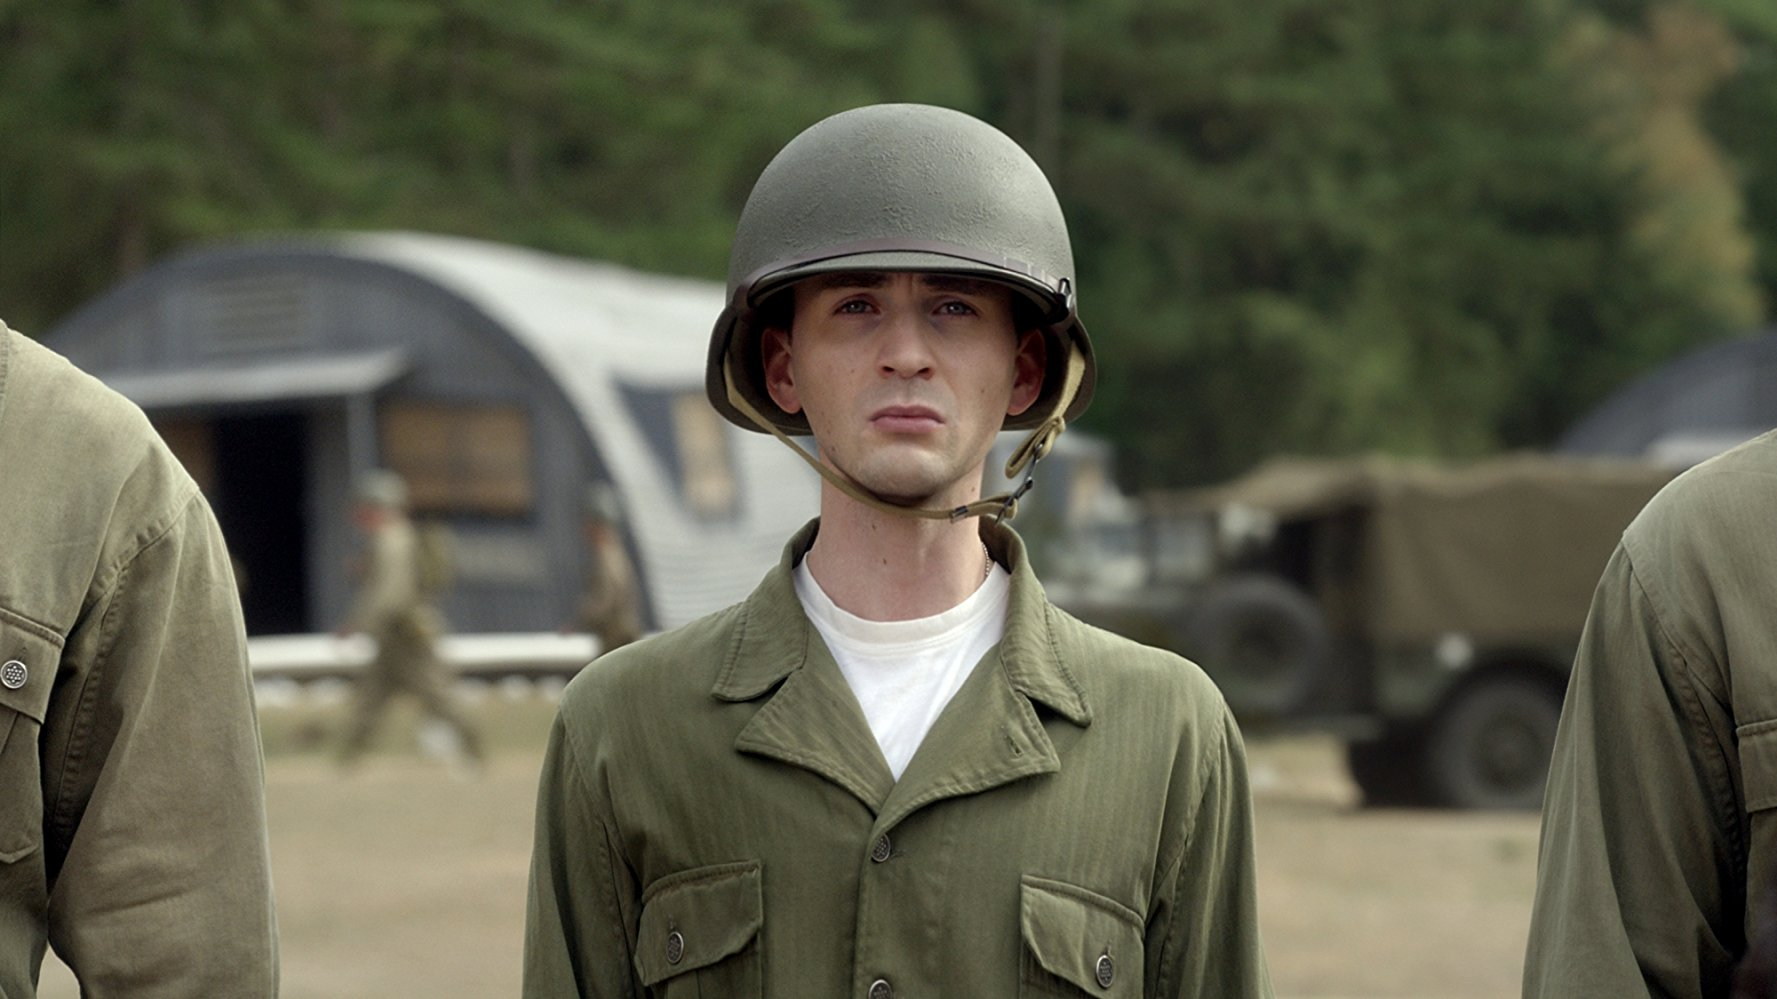 Steve Rogers in basic training before becoming Captain America